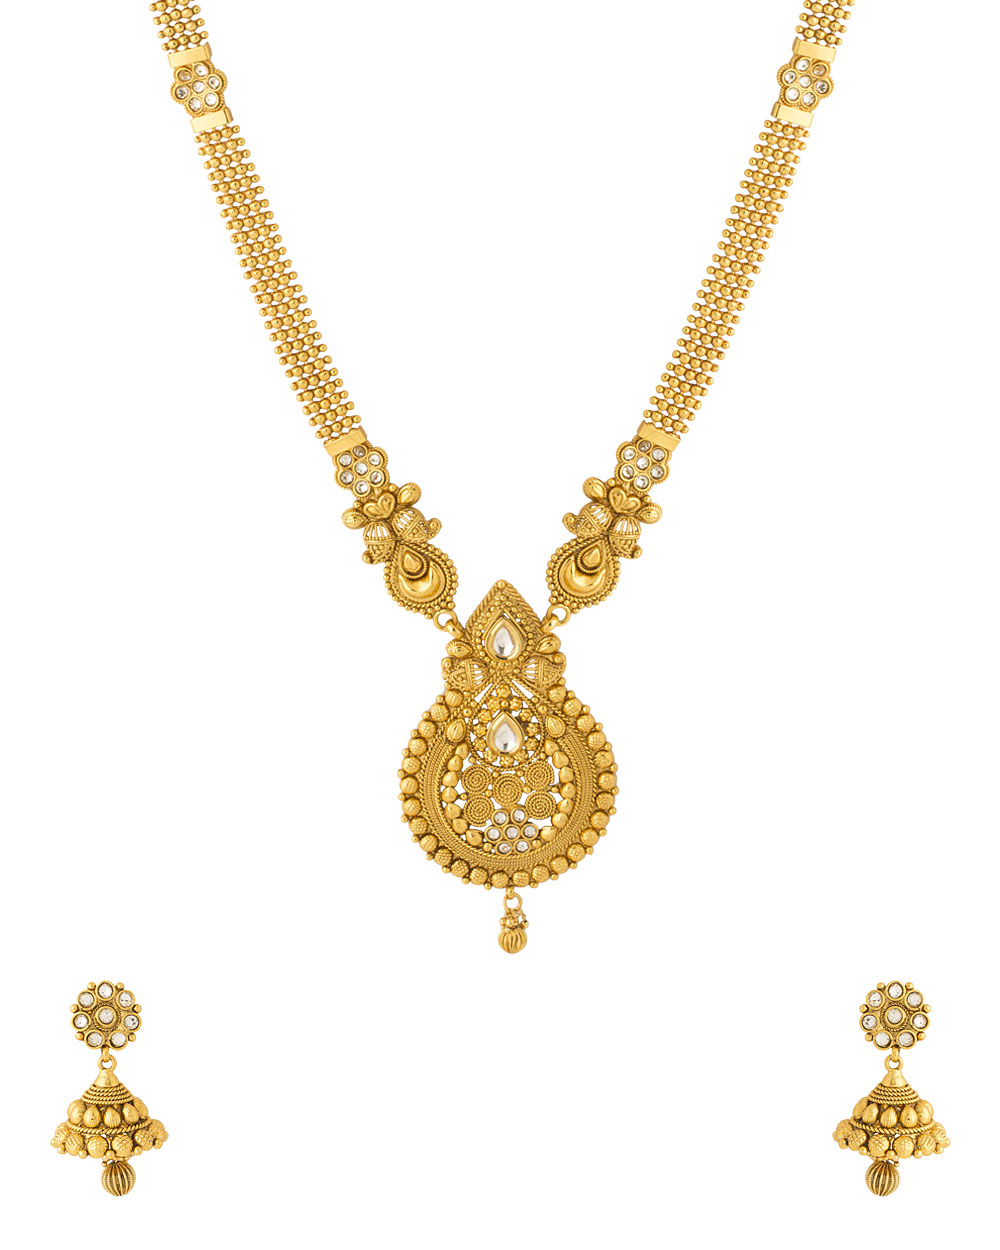 Awesome Bangladeshi Gold All Jewelry Design 2016 Ideas - Jewelry ...